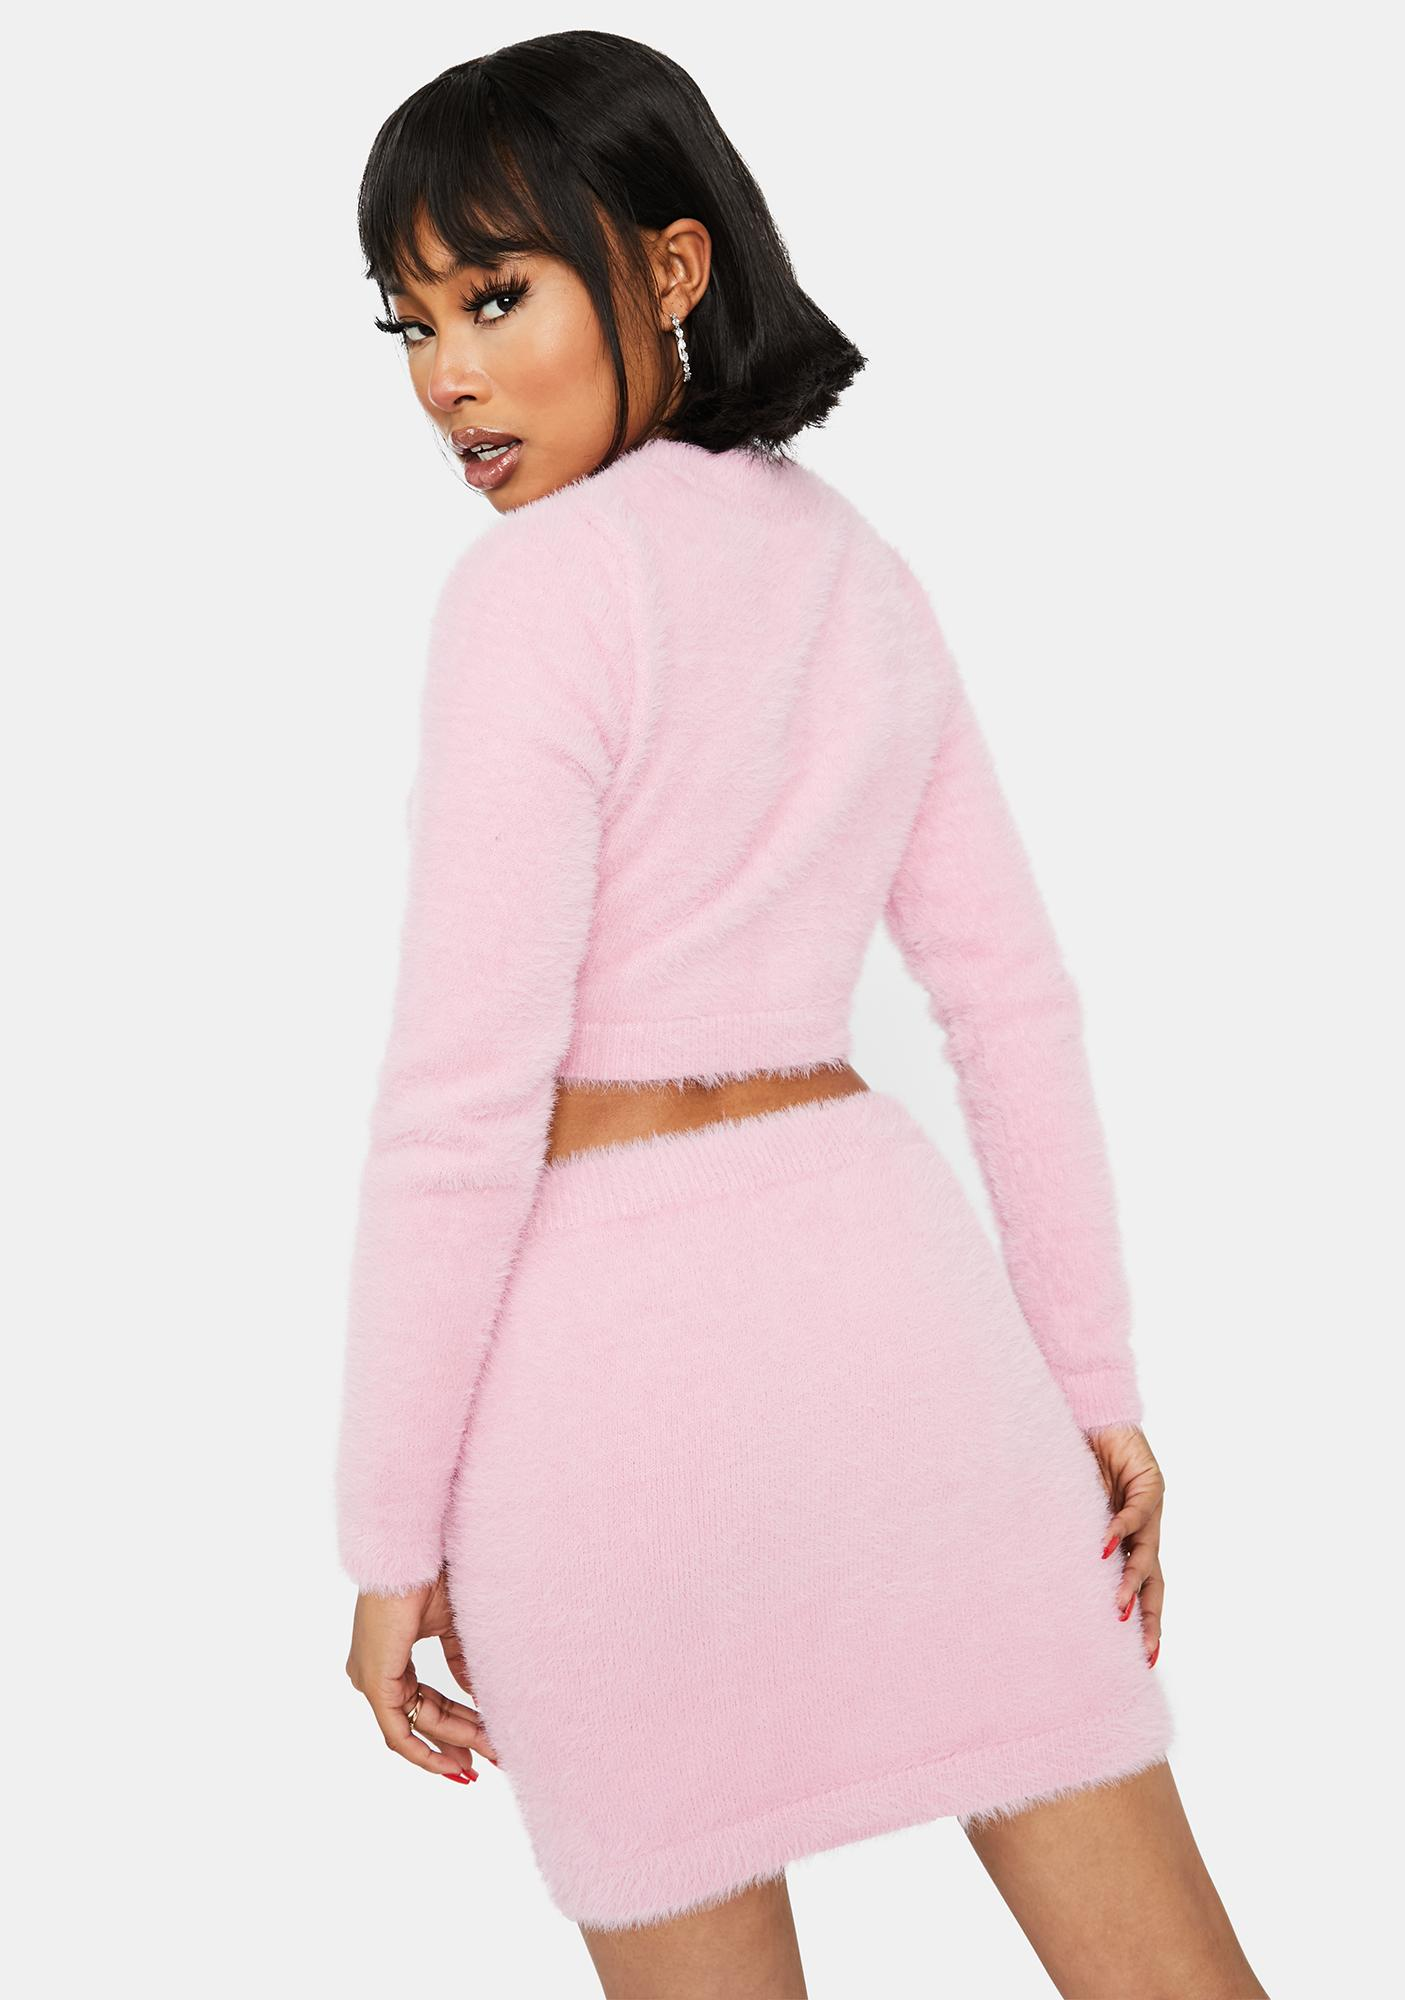 Bratty Confessions Fuzzy Skirt Set